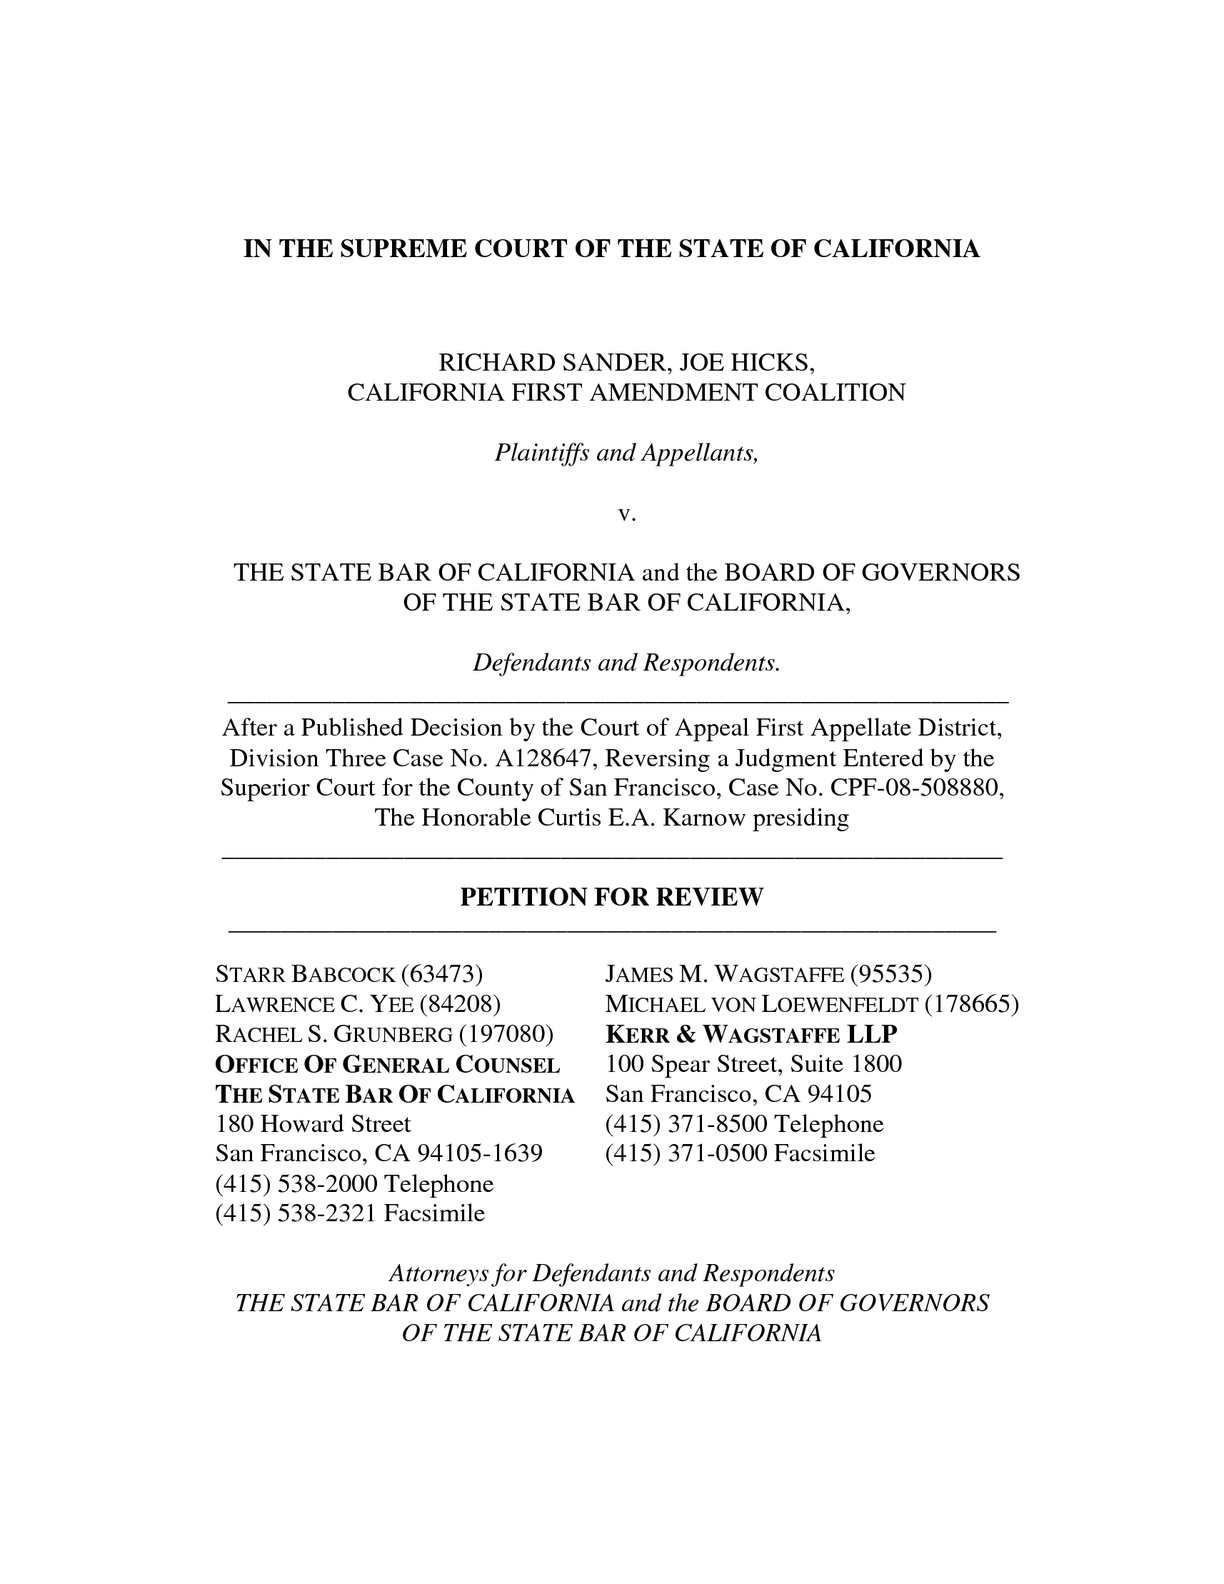 California State Bar Calaméo State Bar Of California Petition For Review To